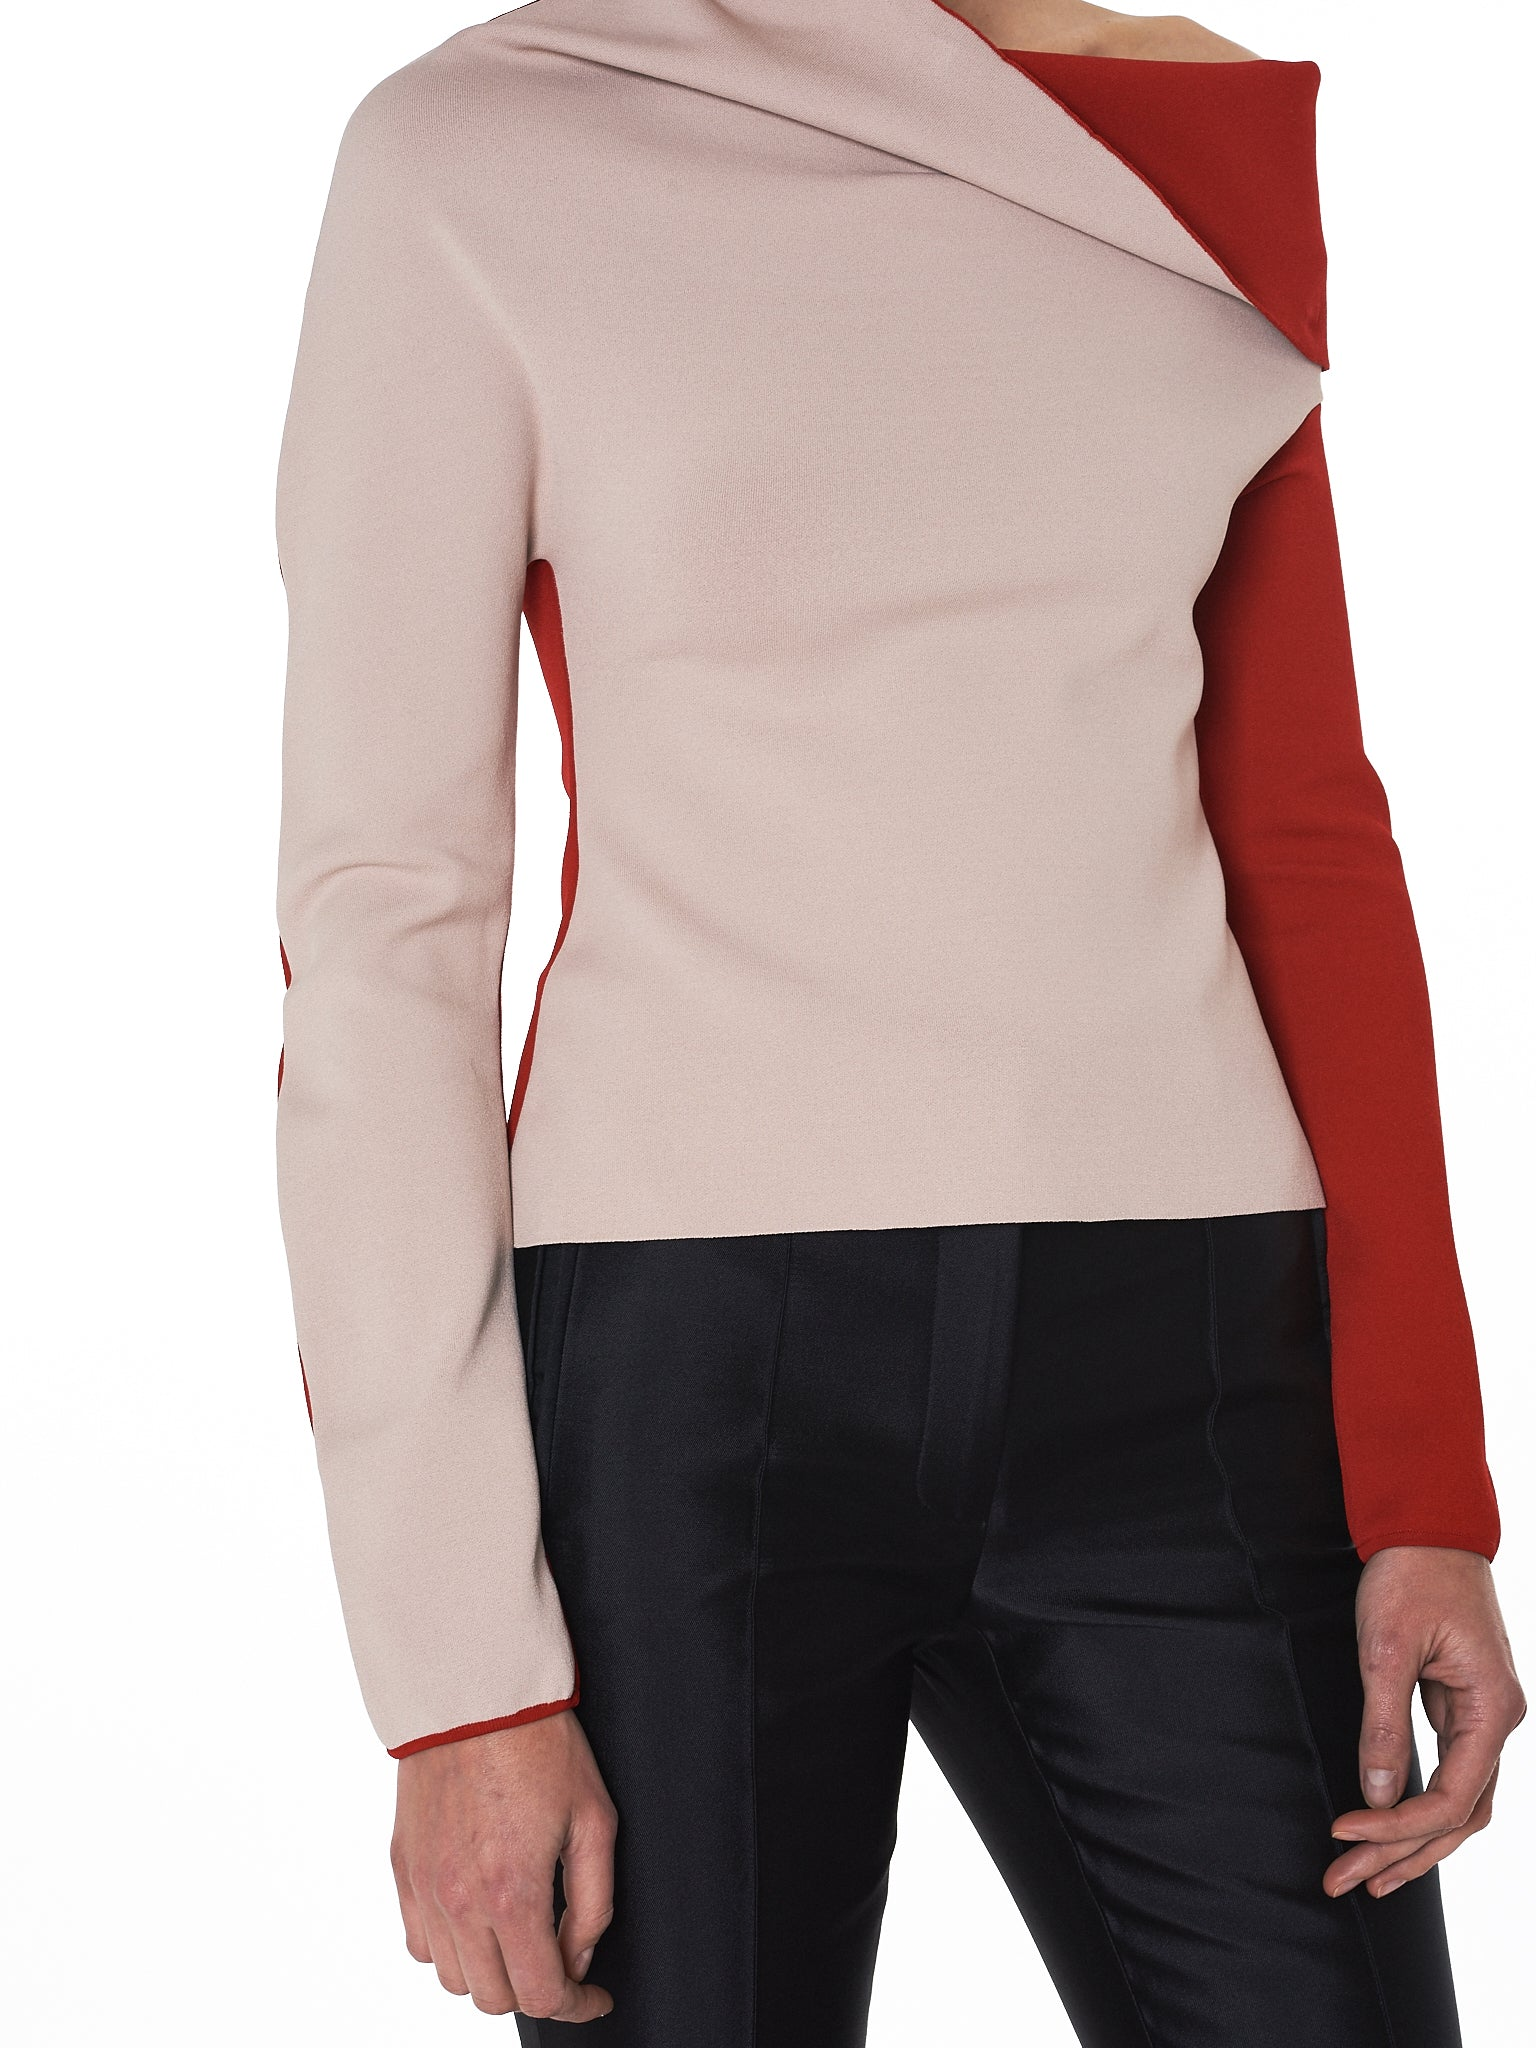 Draped Knit Sweater (183-2604-338-026)